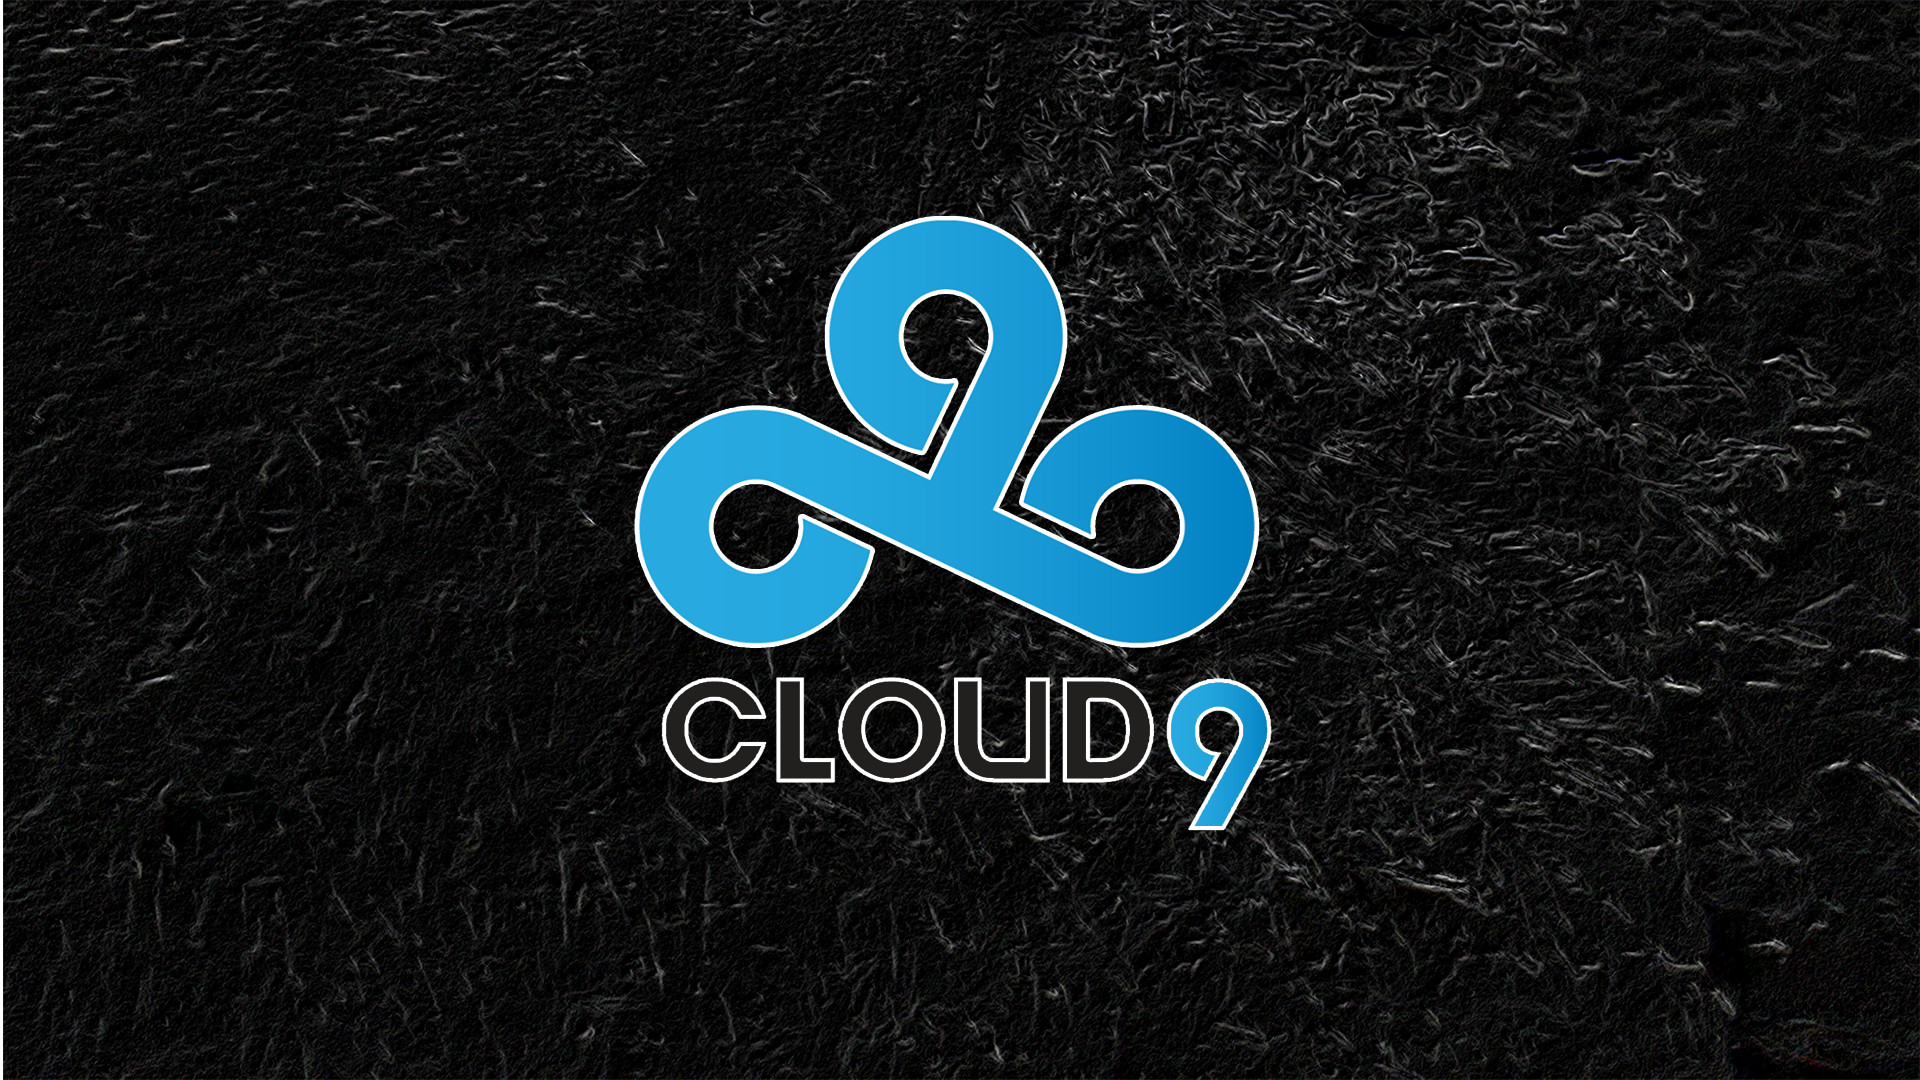 Cloud9 CS:GO and LoL Wallpaper HD by toskevdesing on DeviantArt